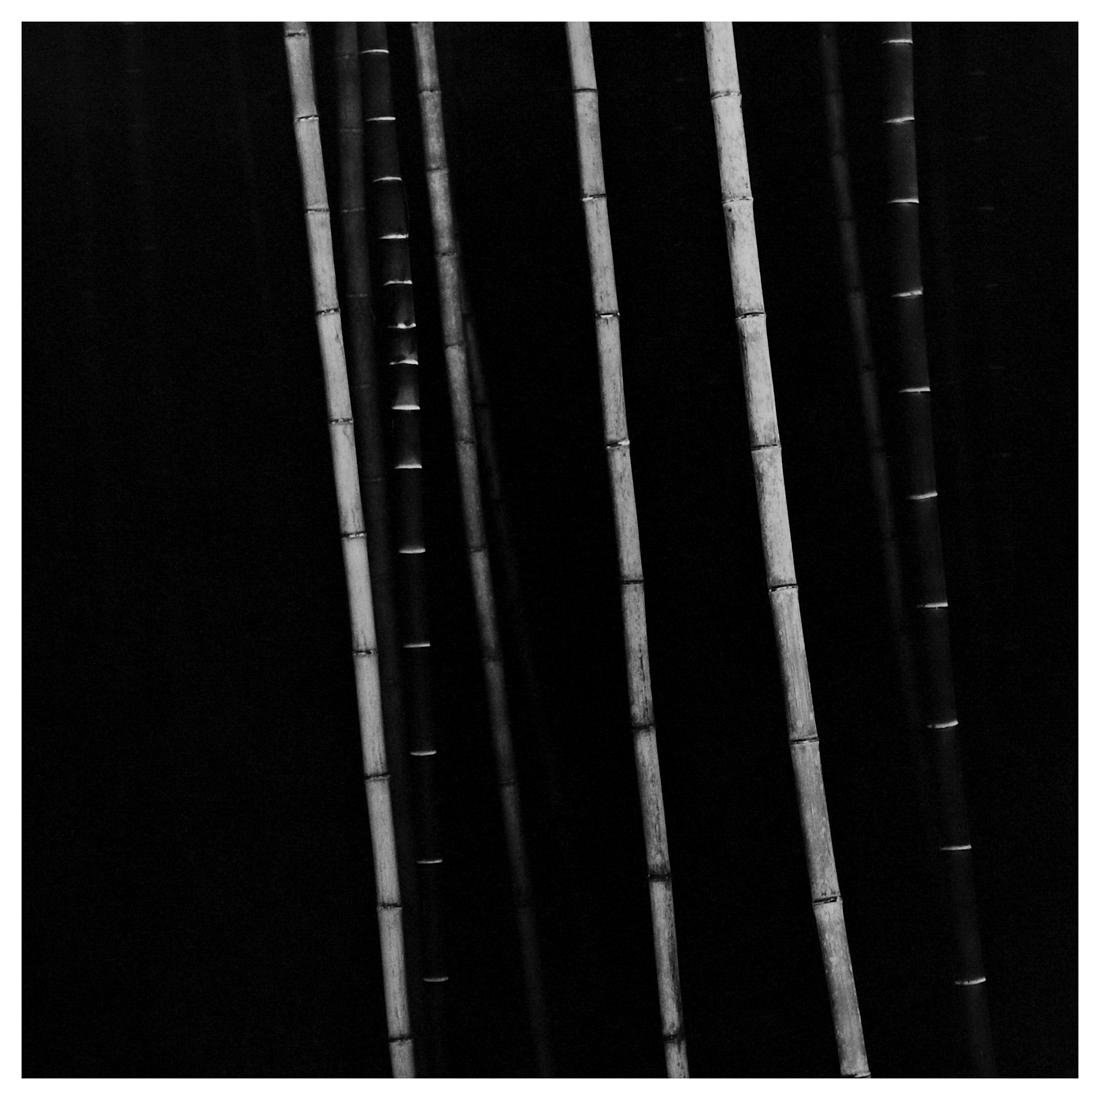 Bamboo Square 05